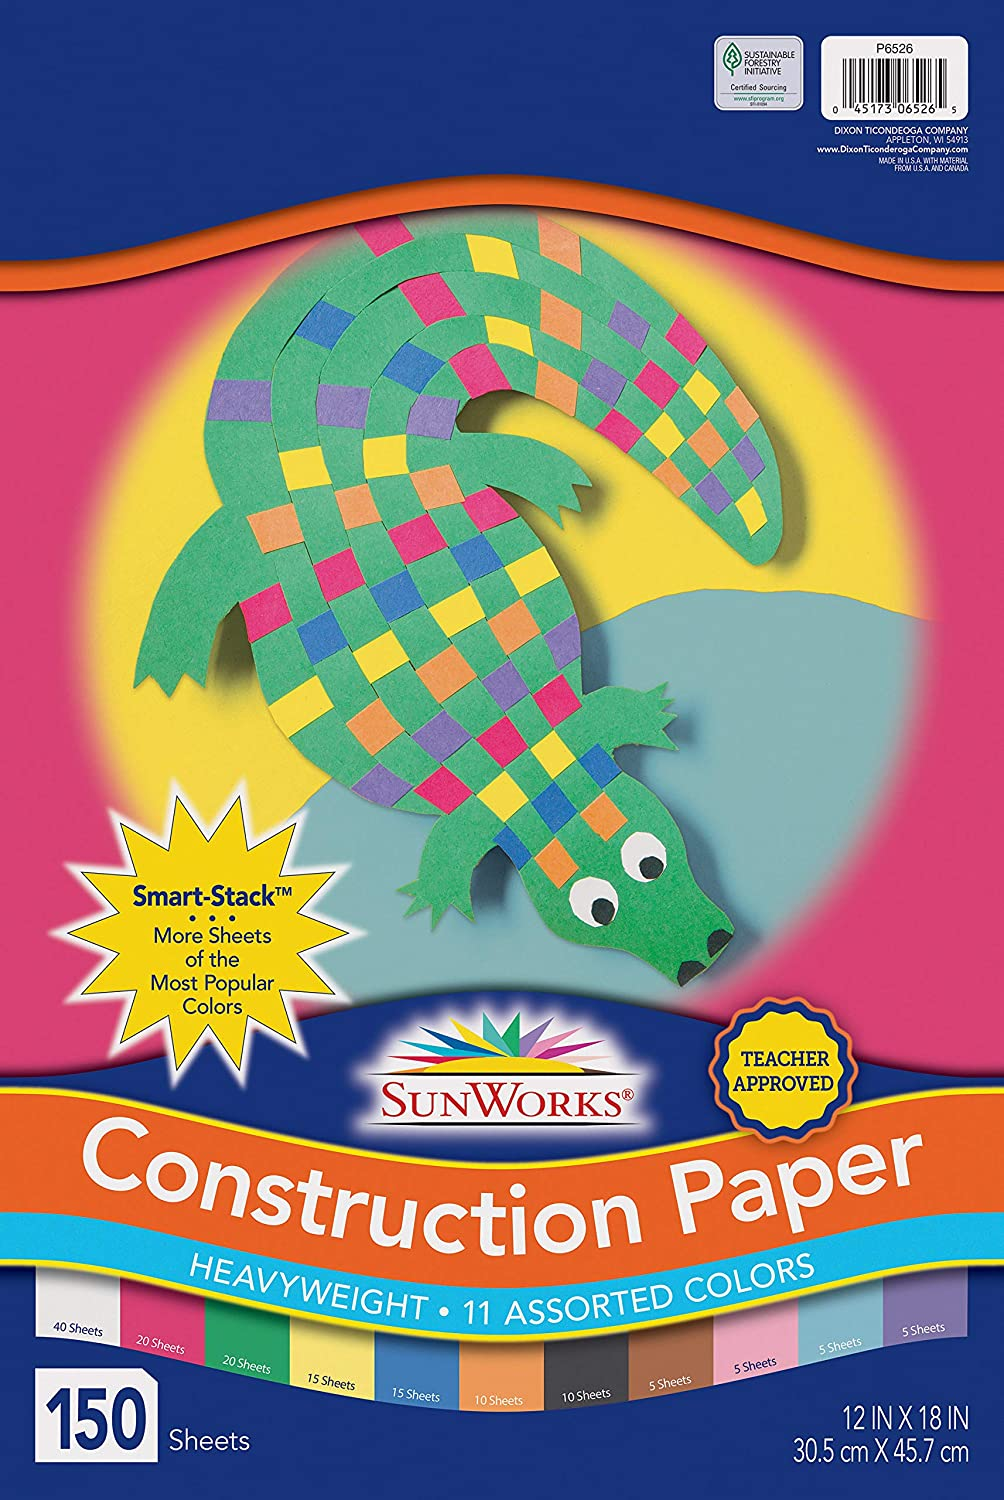 18 x 24 Inches SunWorks Heavyweight Construction Paper Pack of 100 Black